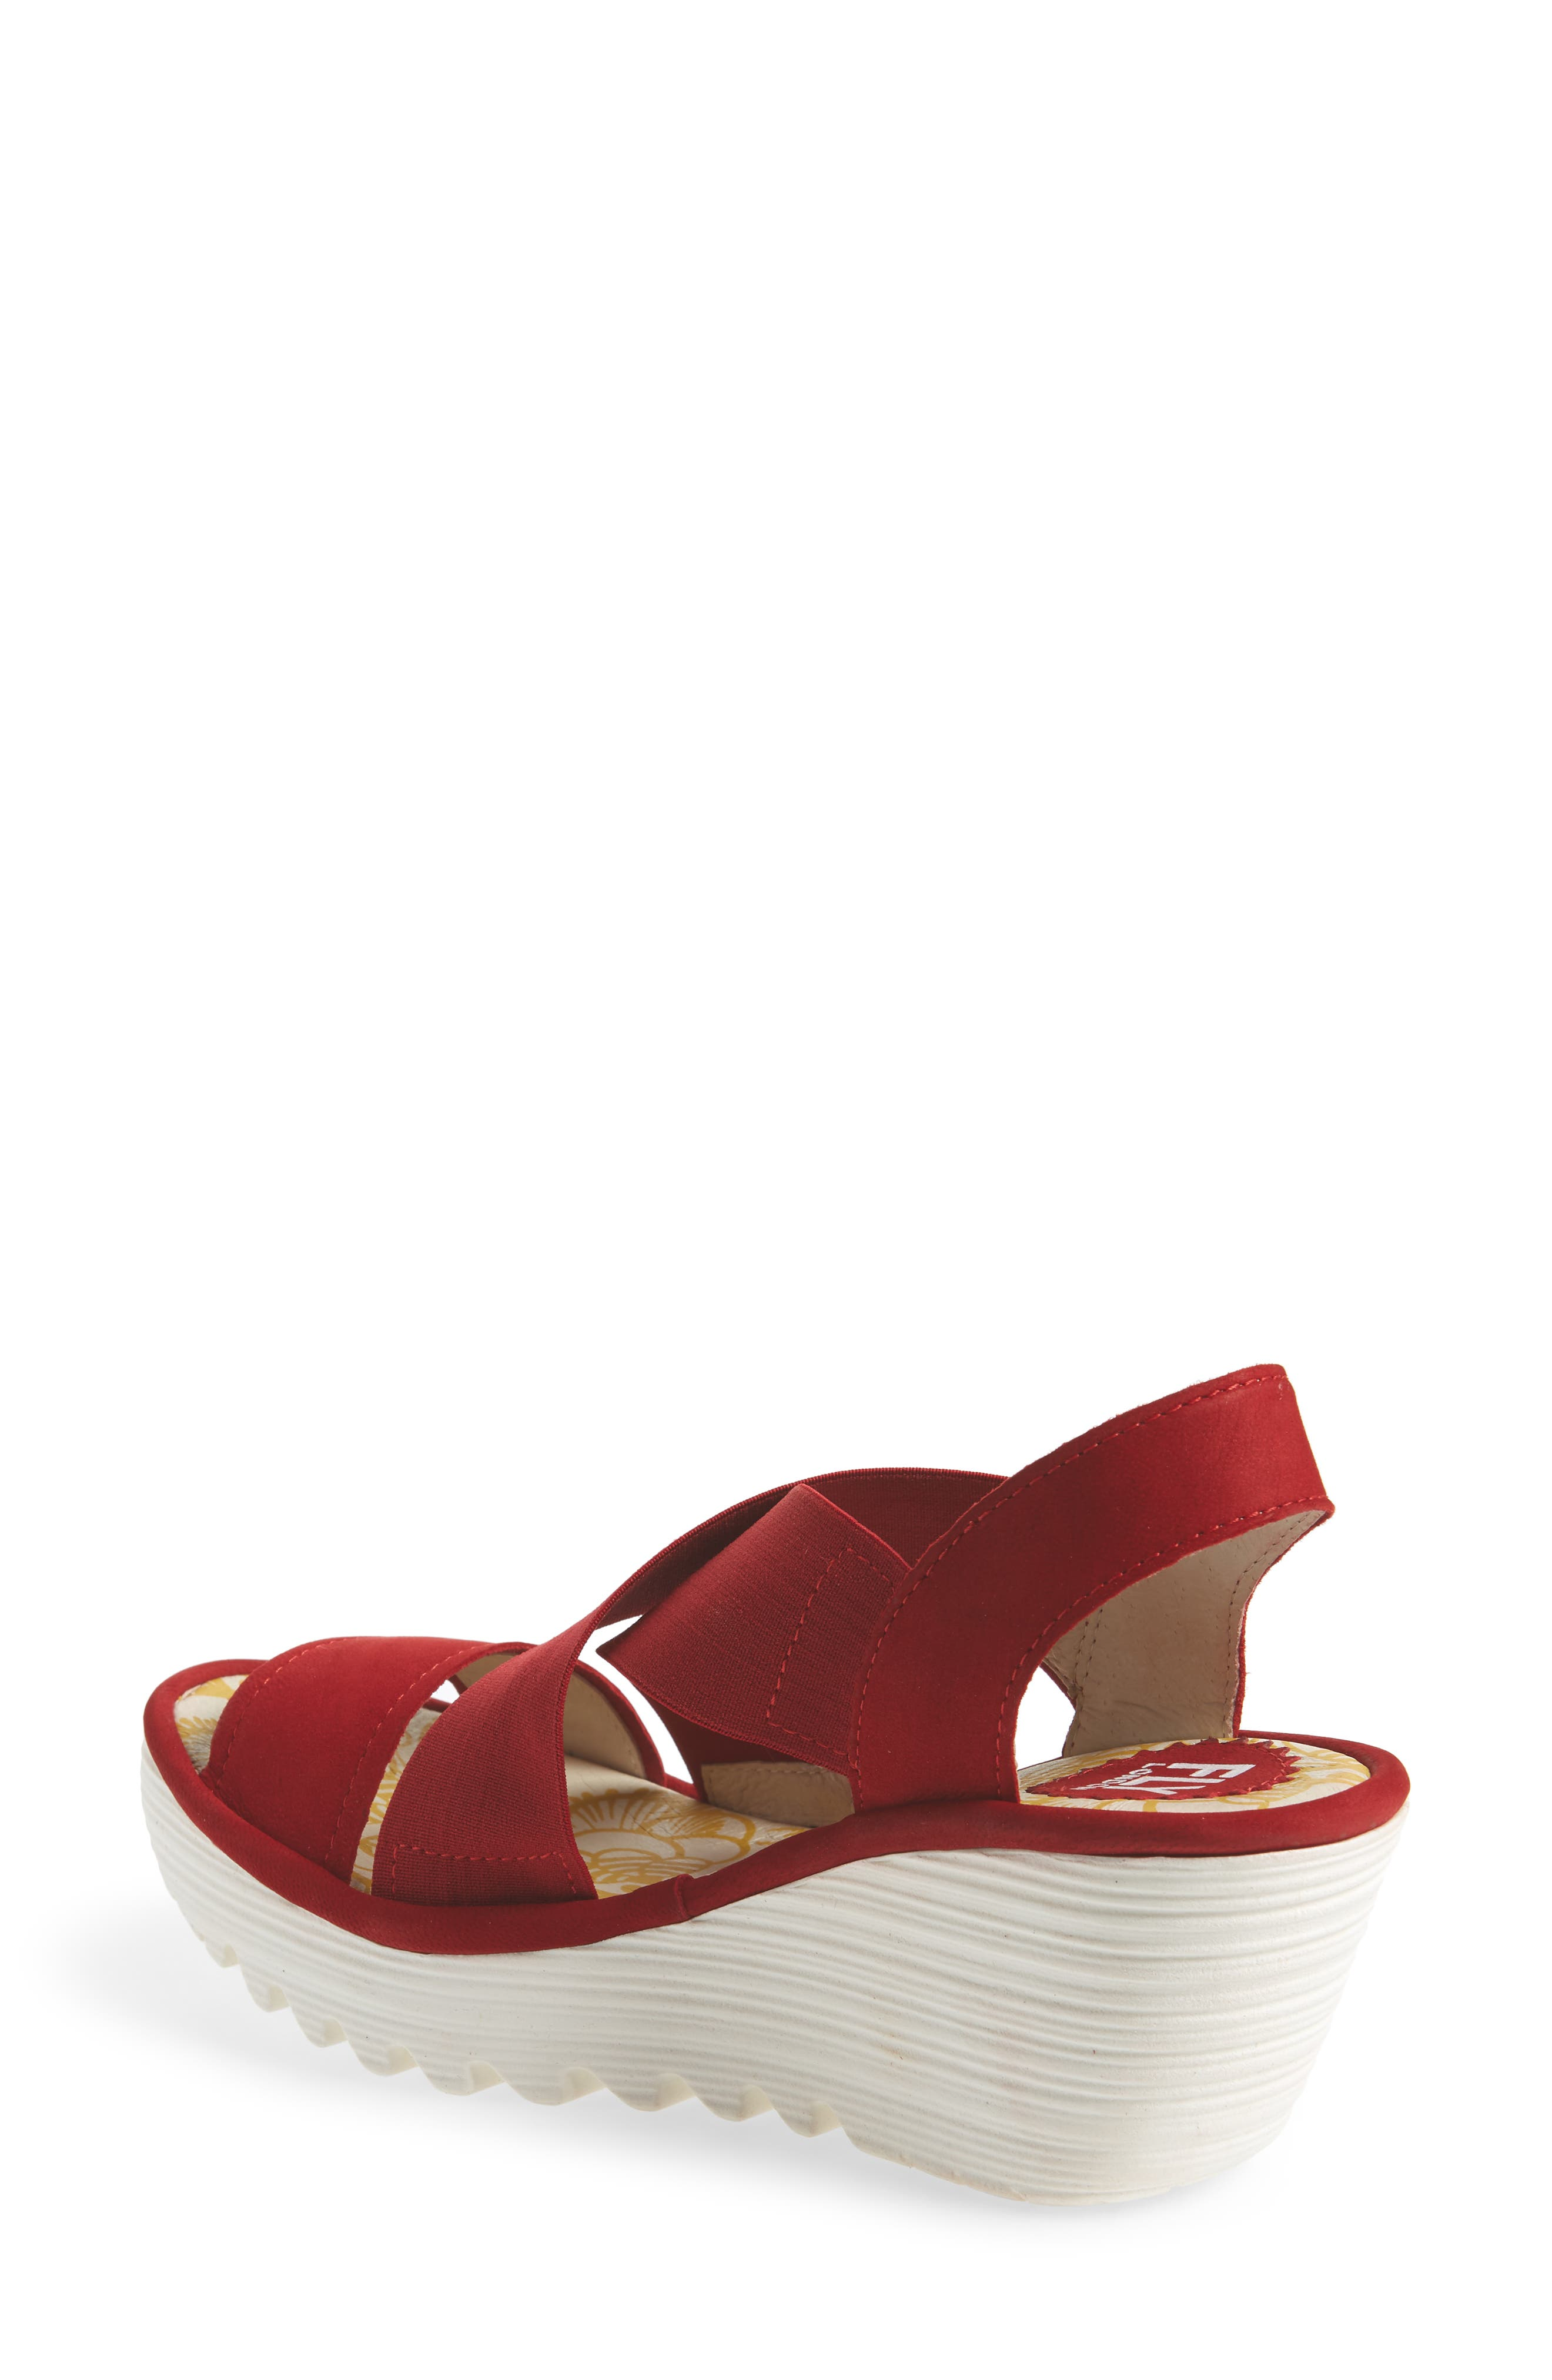 Yaji Cross Wedge Sandal,                             Alternate thumbnail 2, color,                             RED LEATHER